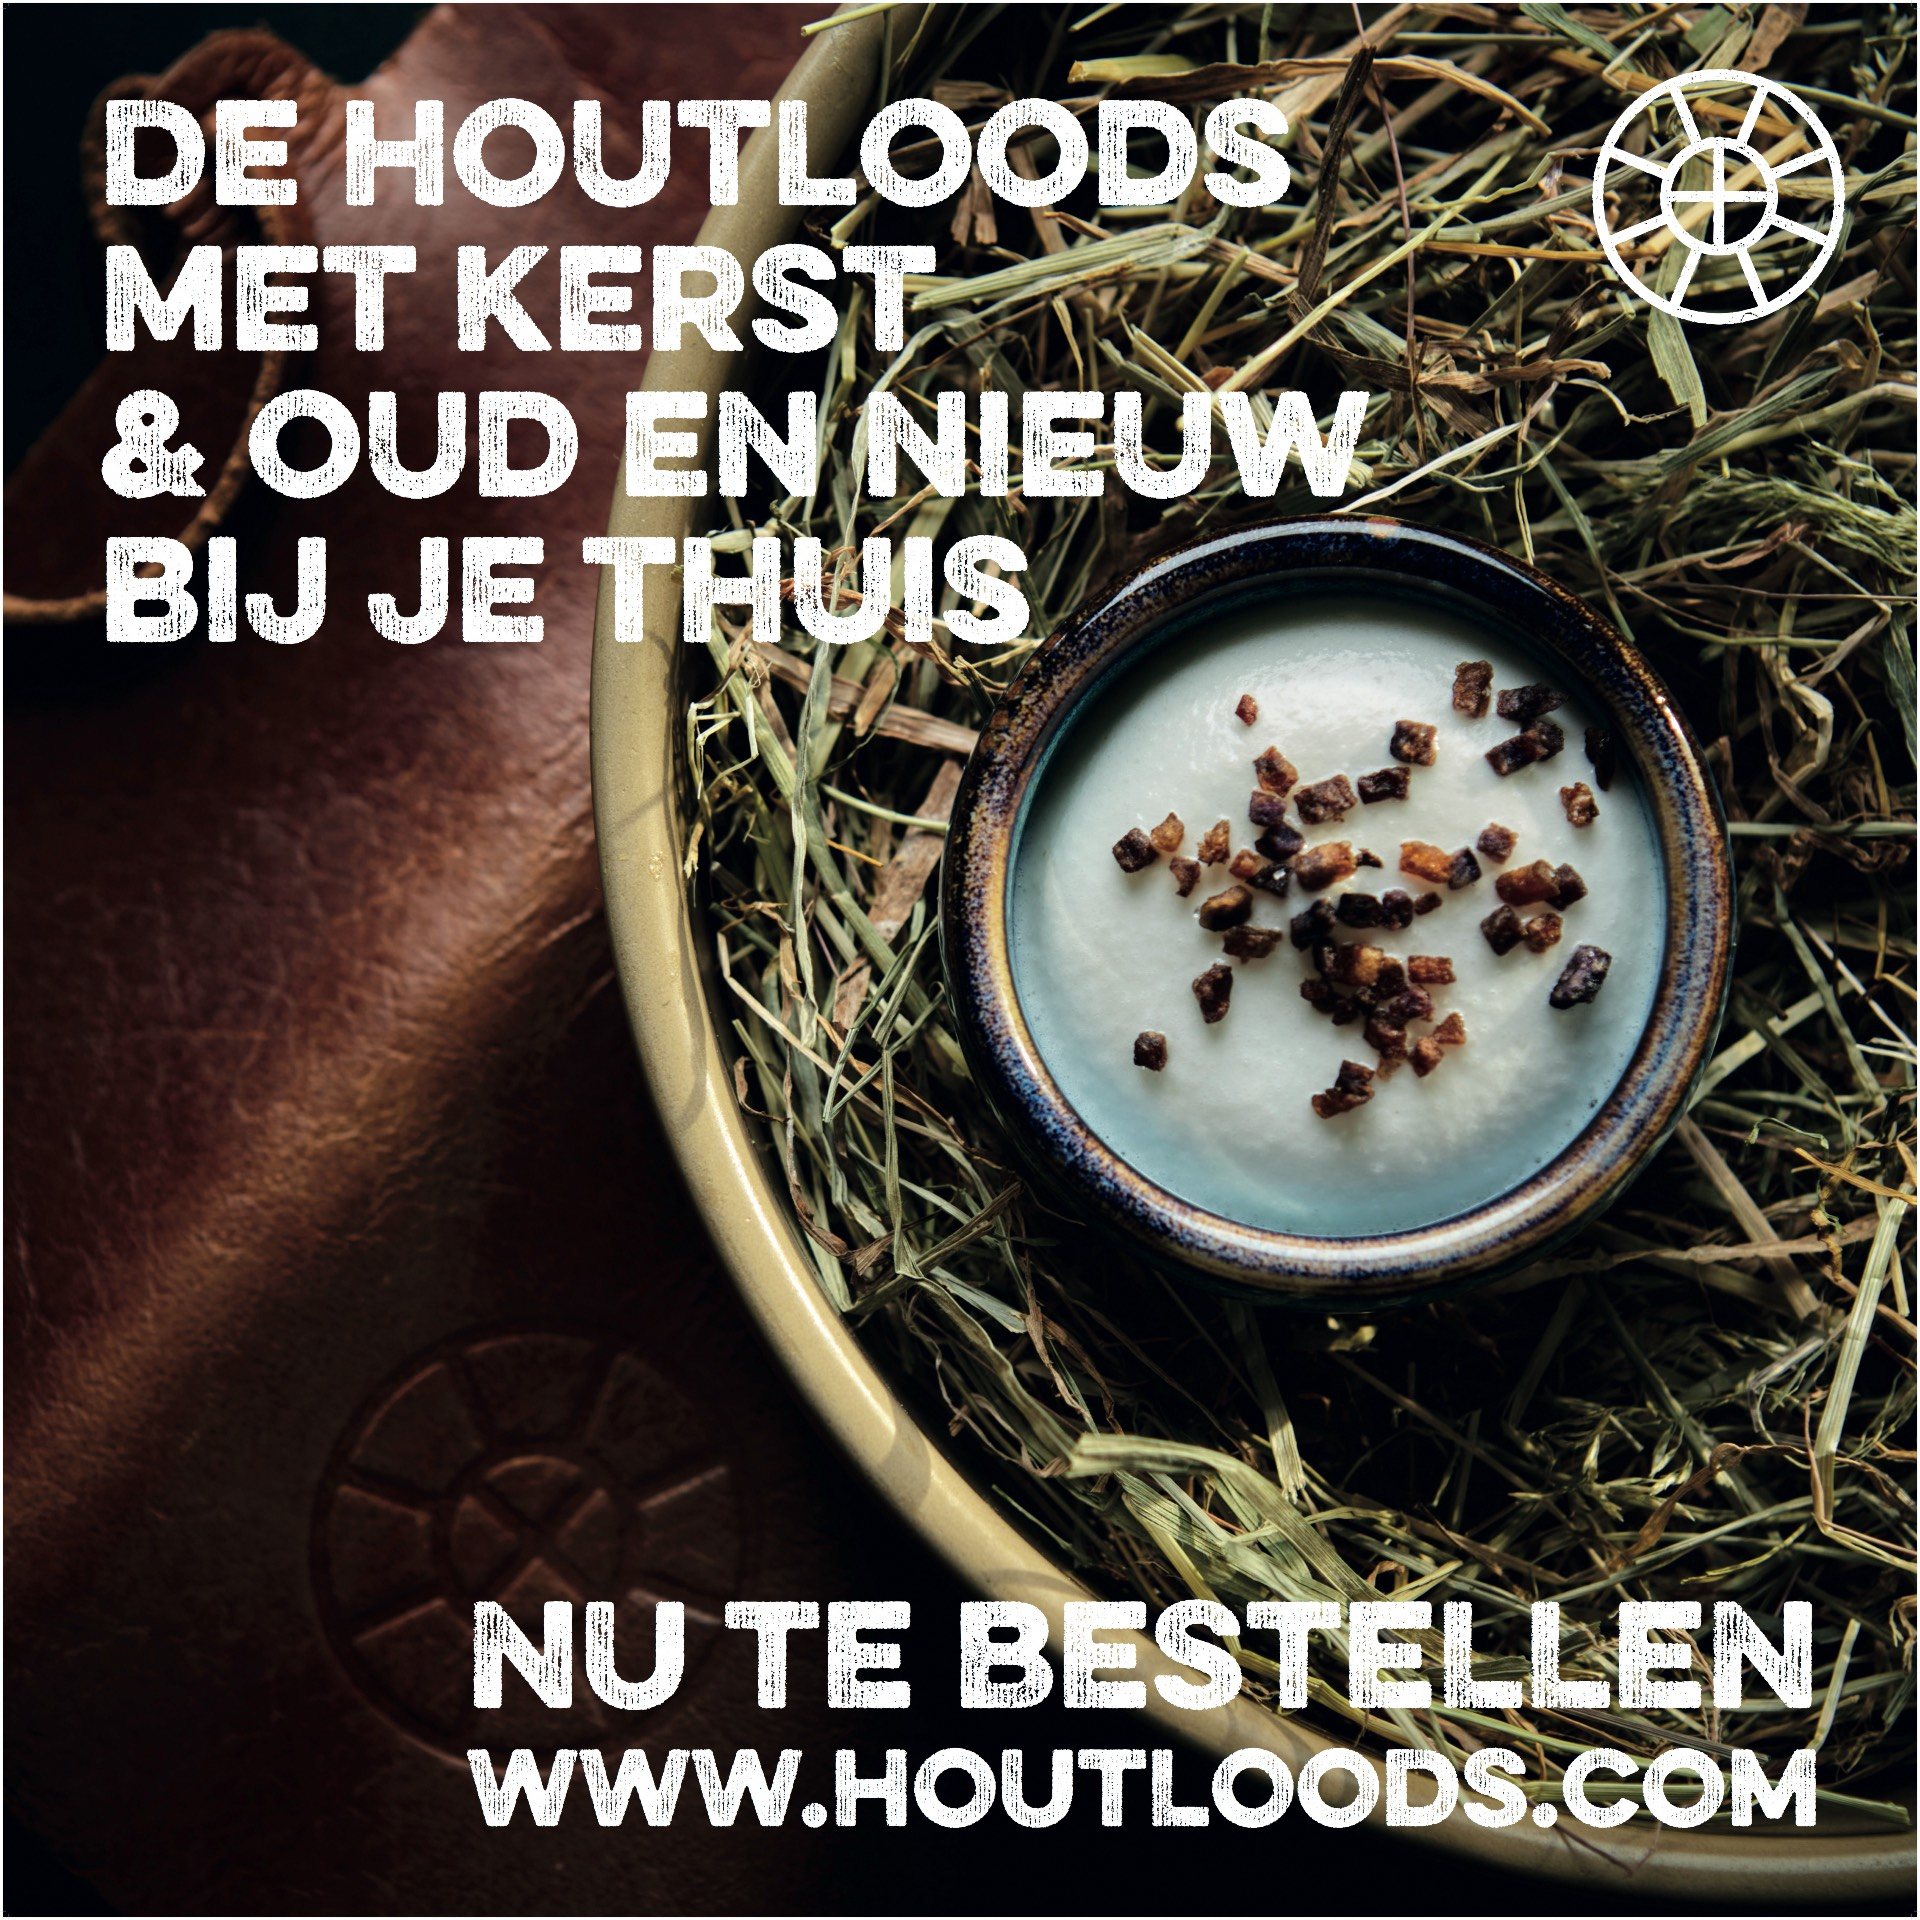 Posters_houtloods2020_kerst small